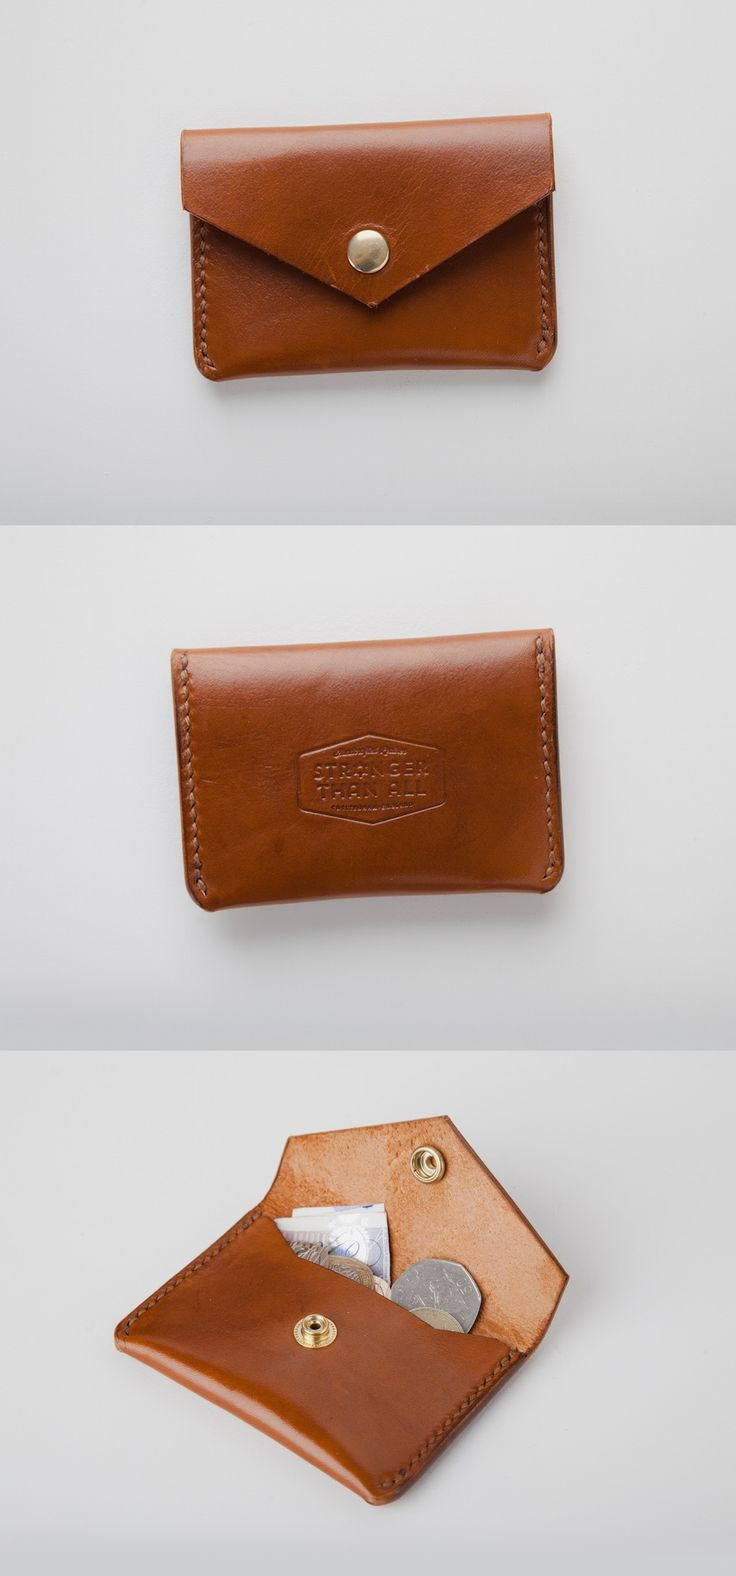 Congac Handmade Leather Snap Wallet by Stronger Than All